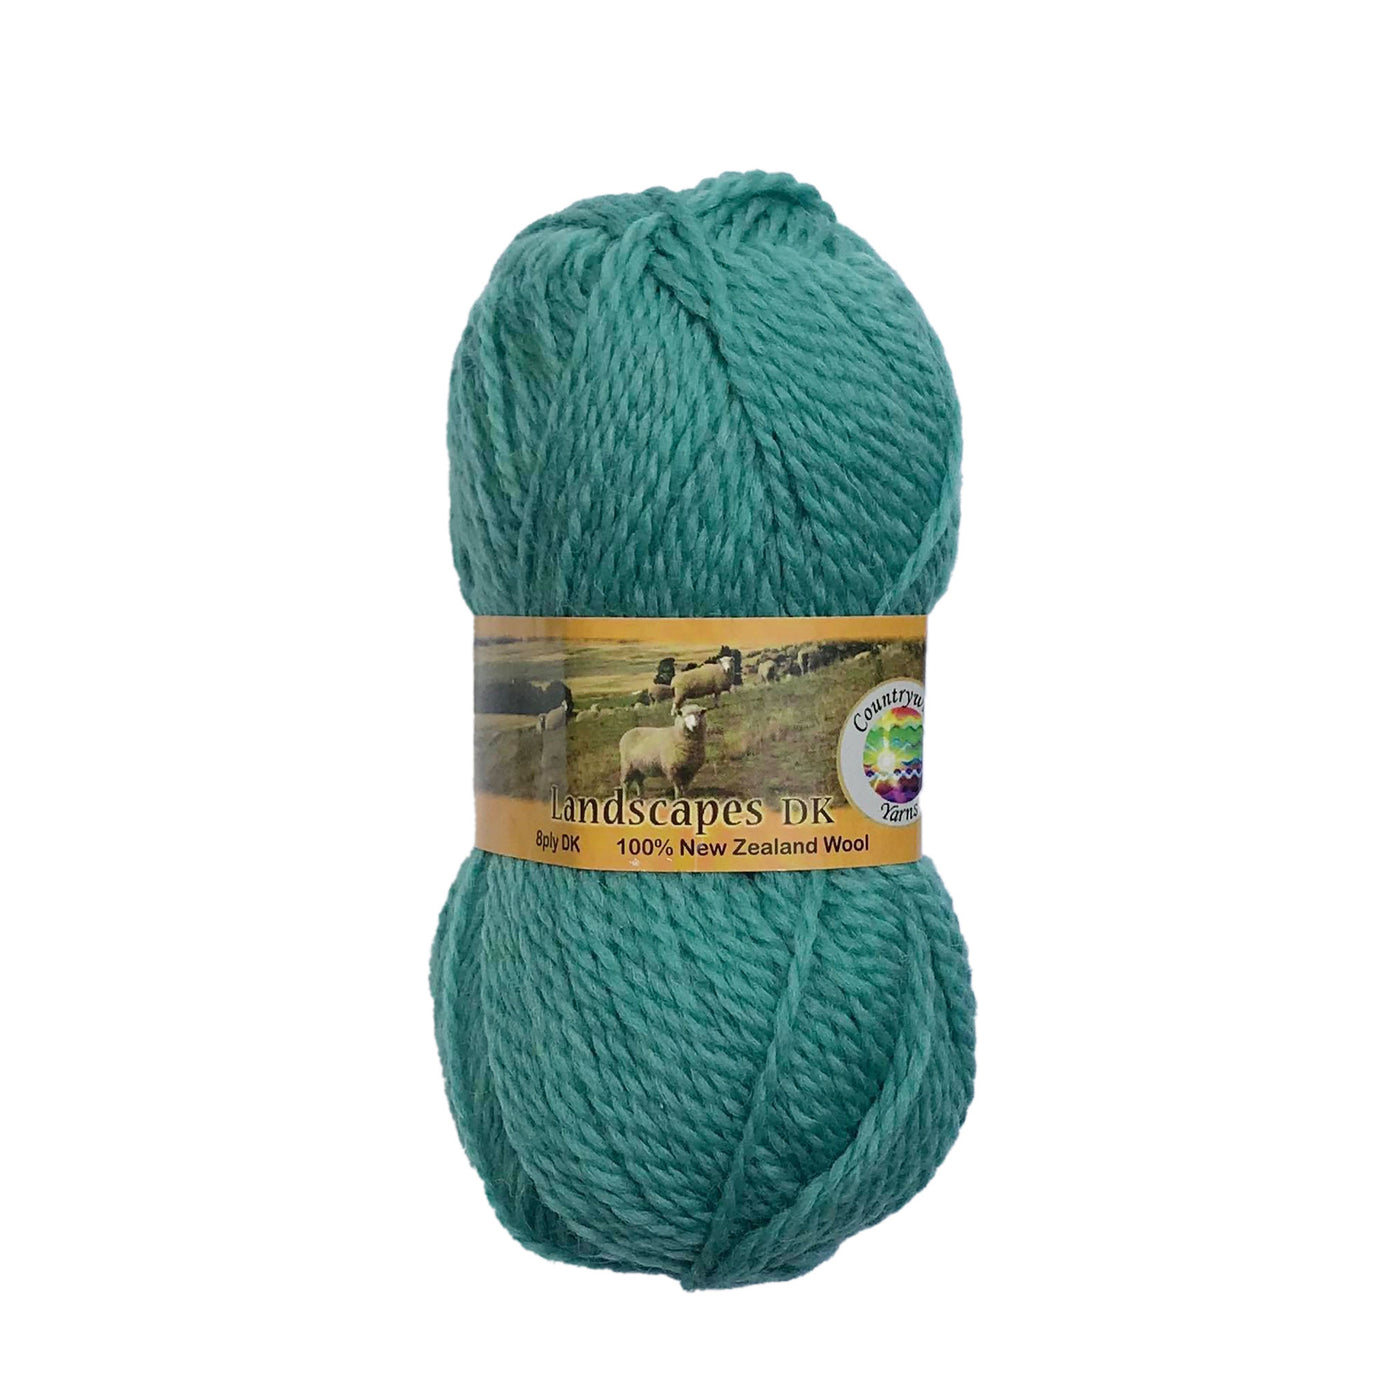 Countrywide Landscapes DK 8ply 100% New Zealand Wool